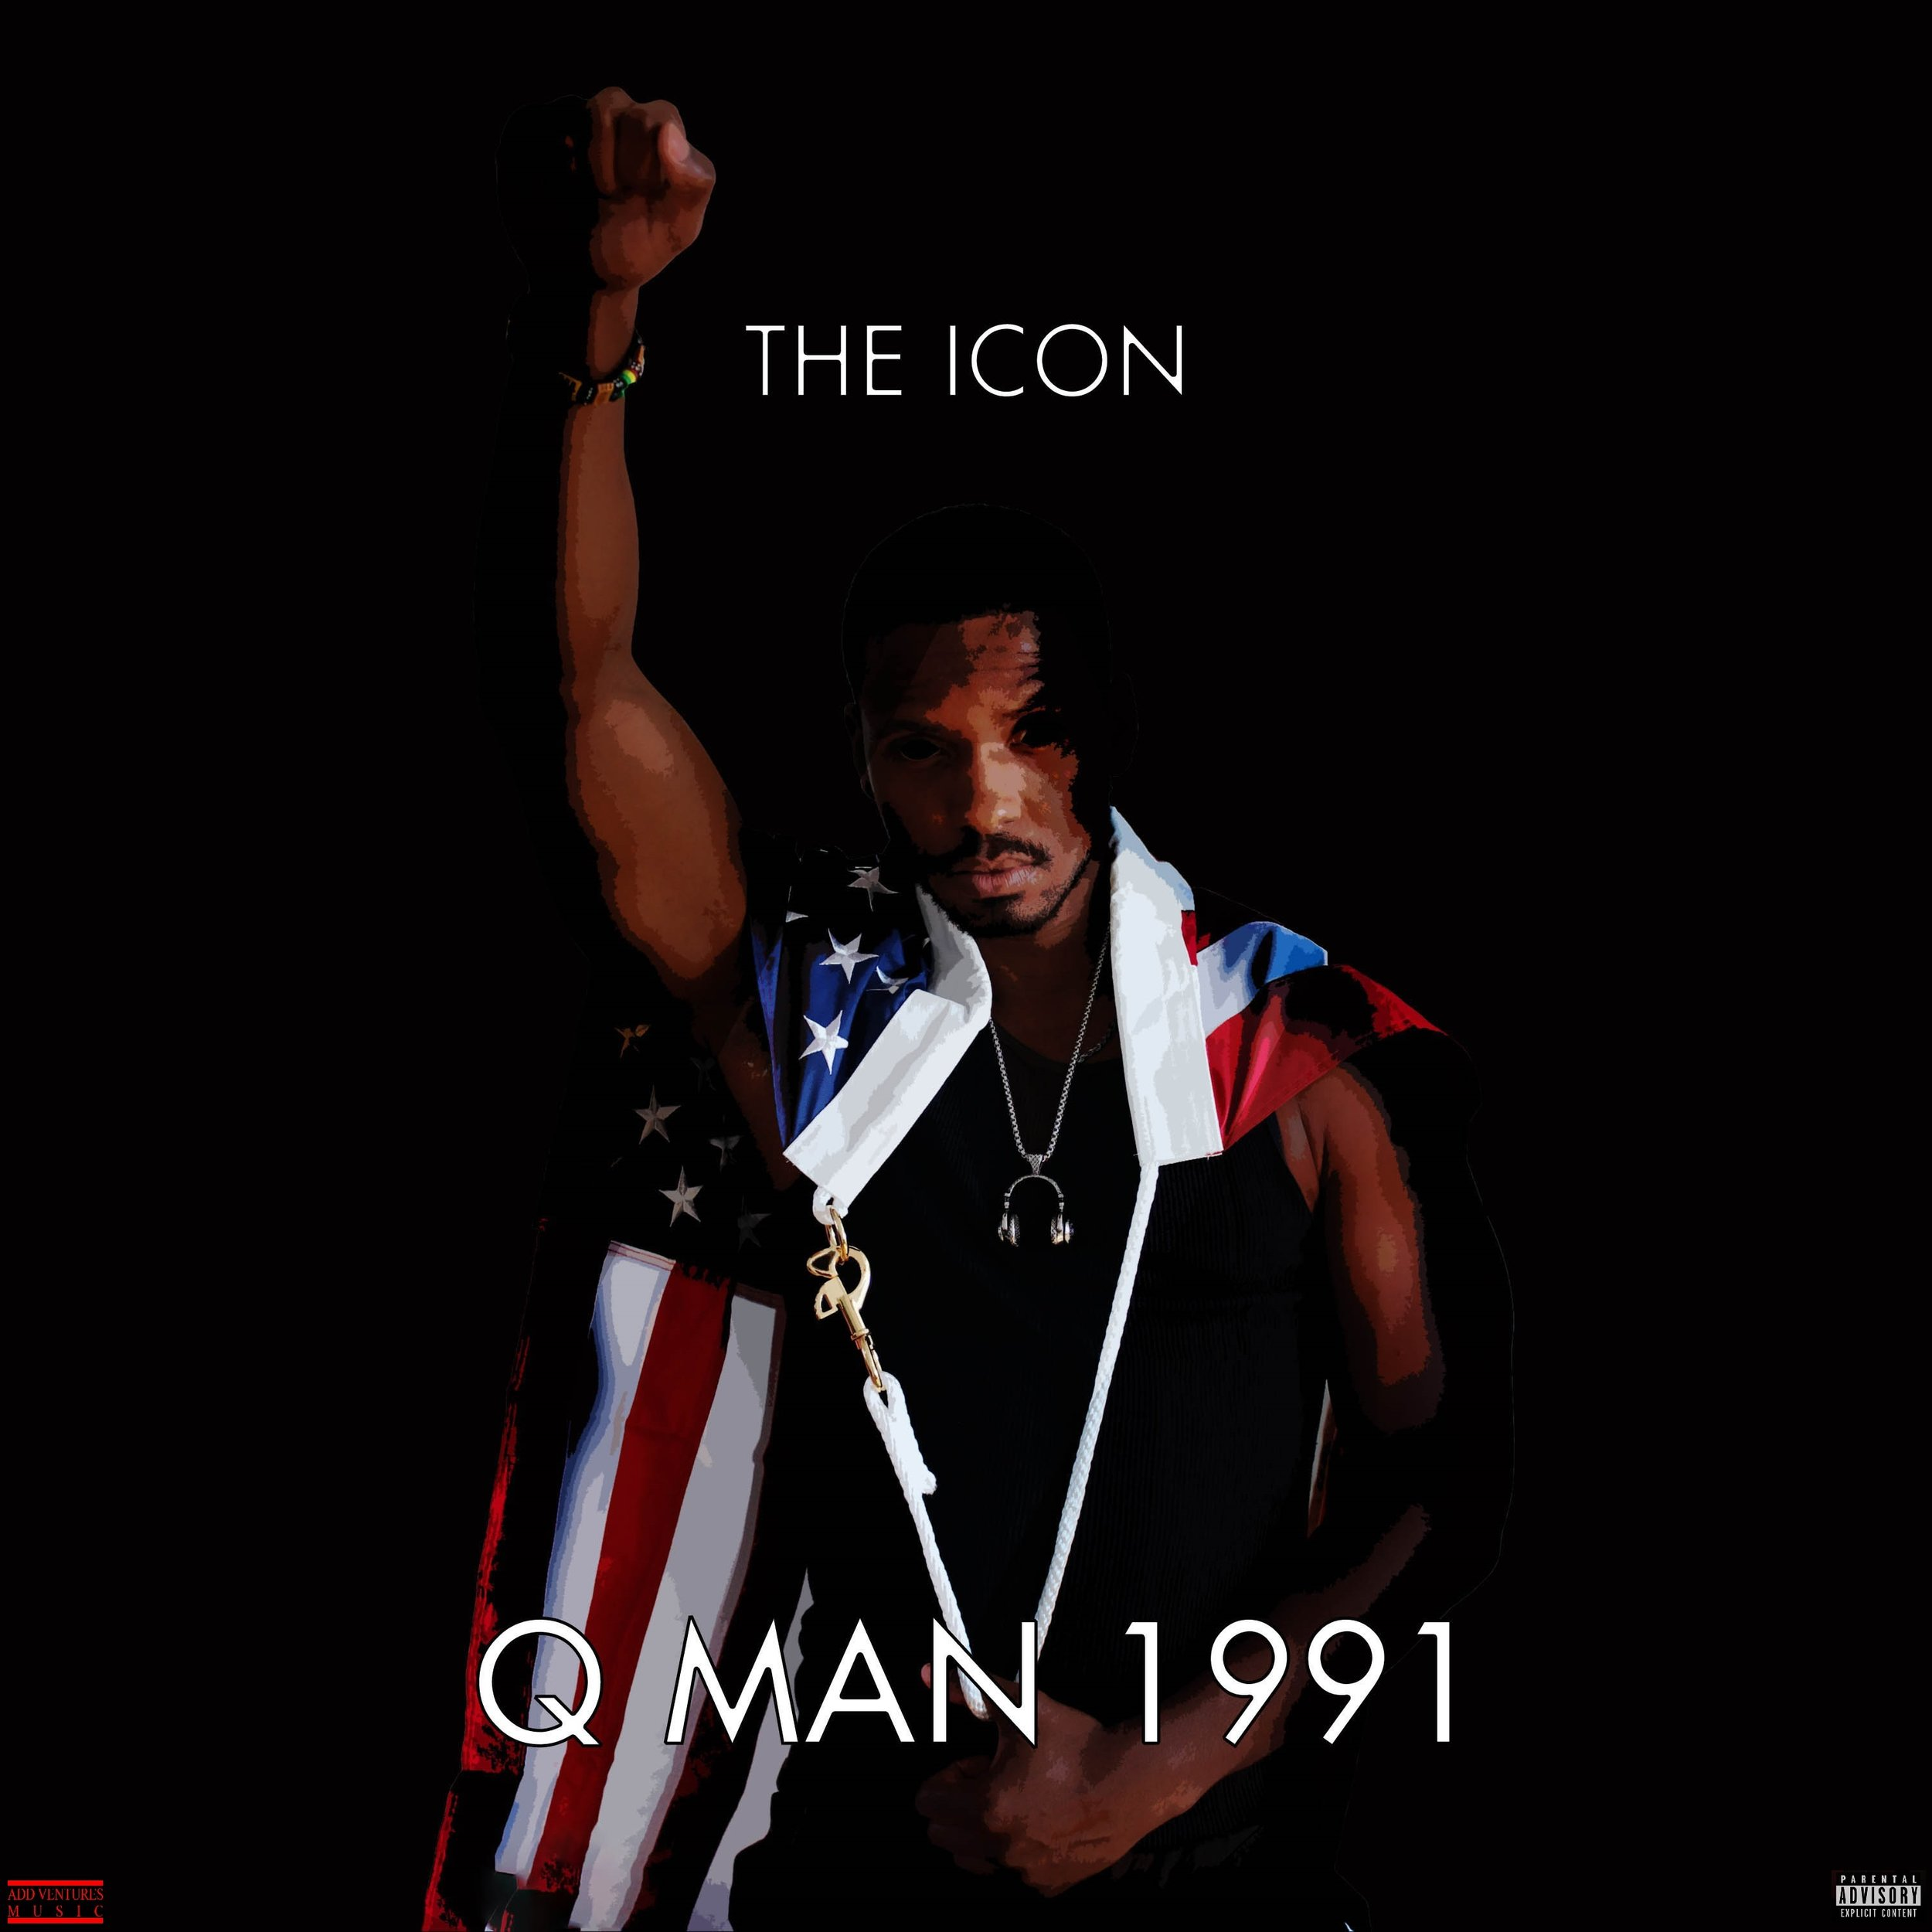 The Icon - Q MAN 1991 - Album cover - Explicit.jpg